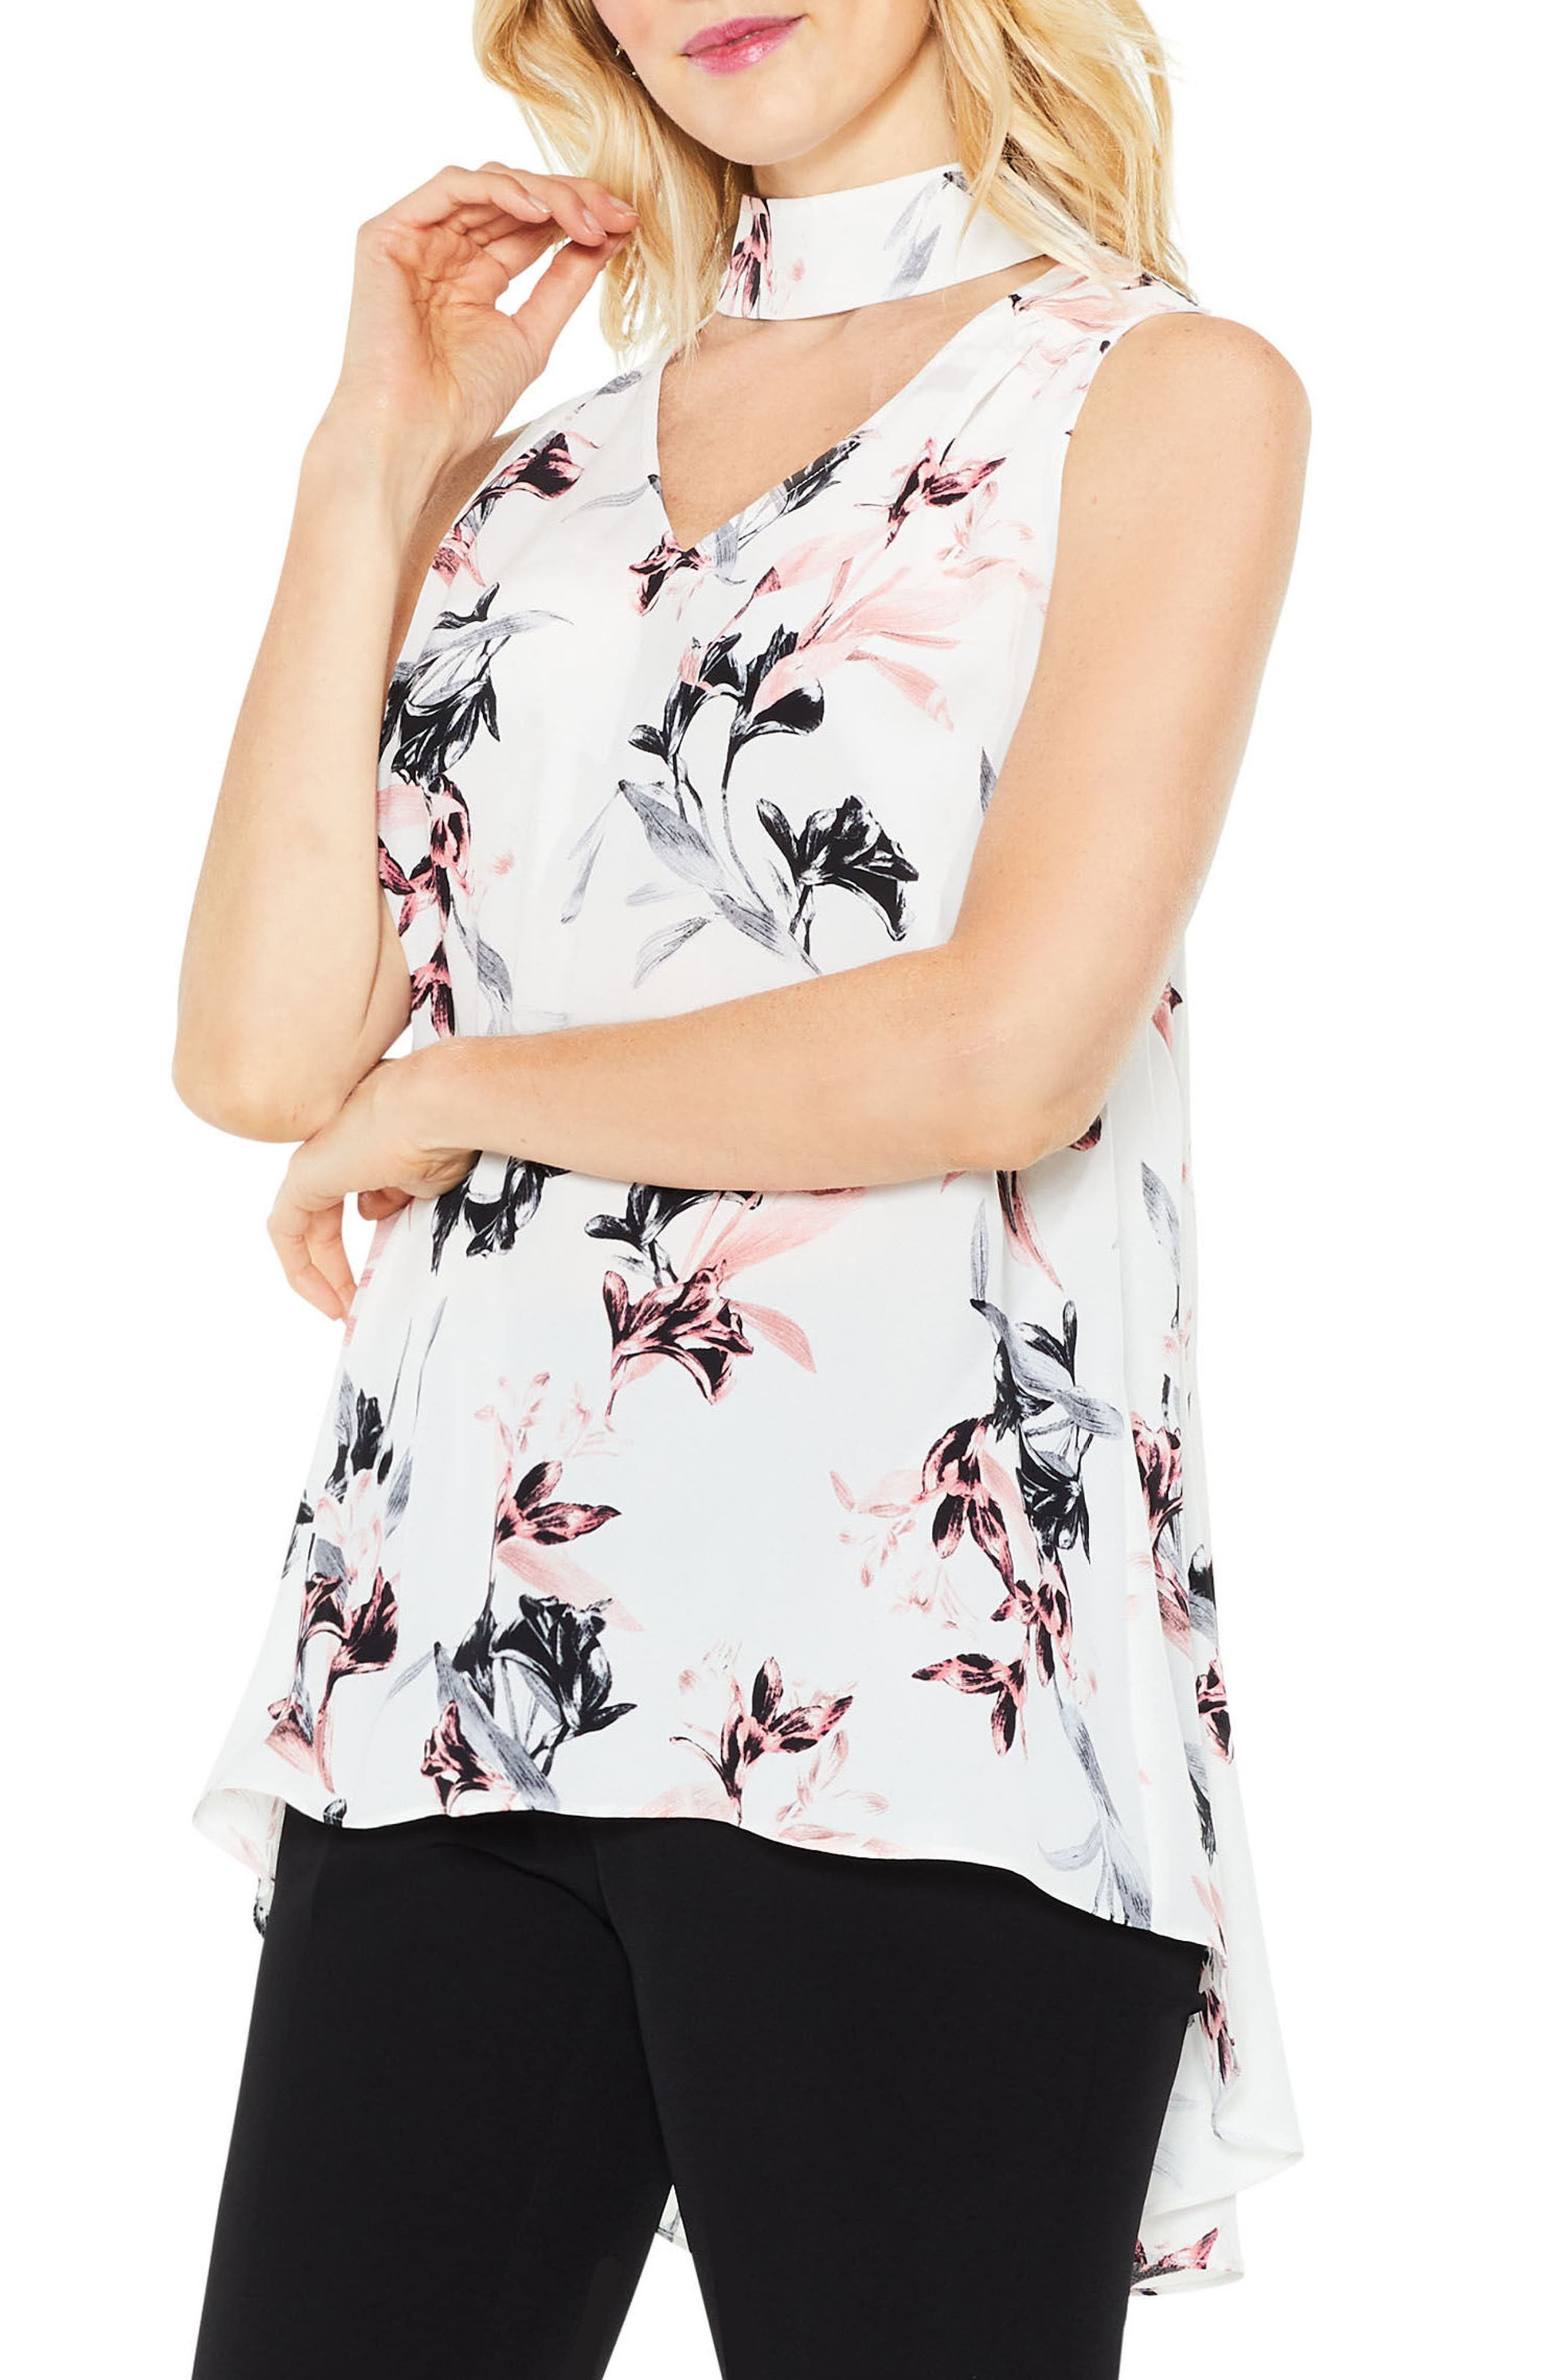 Lily Melody Choker Neck Blouse,                         Main,                         color, 103